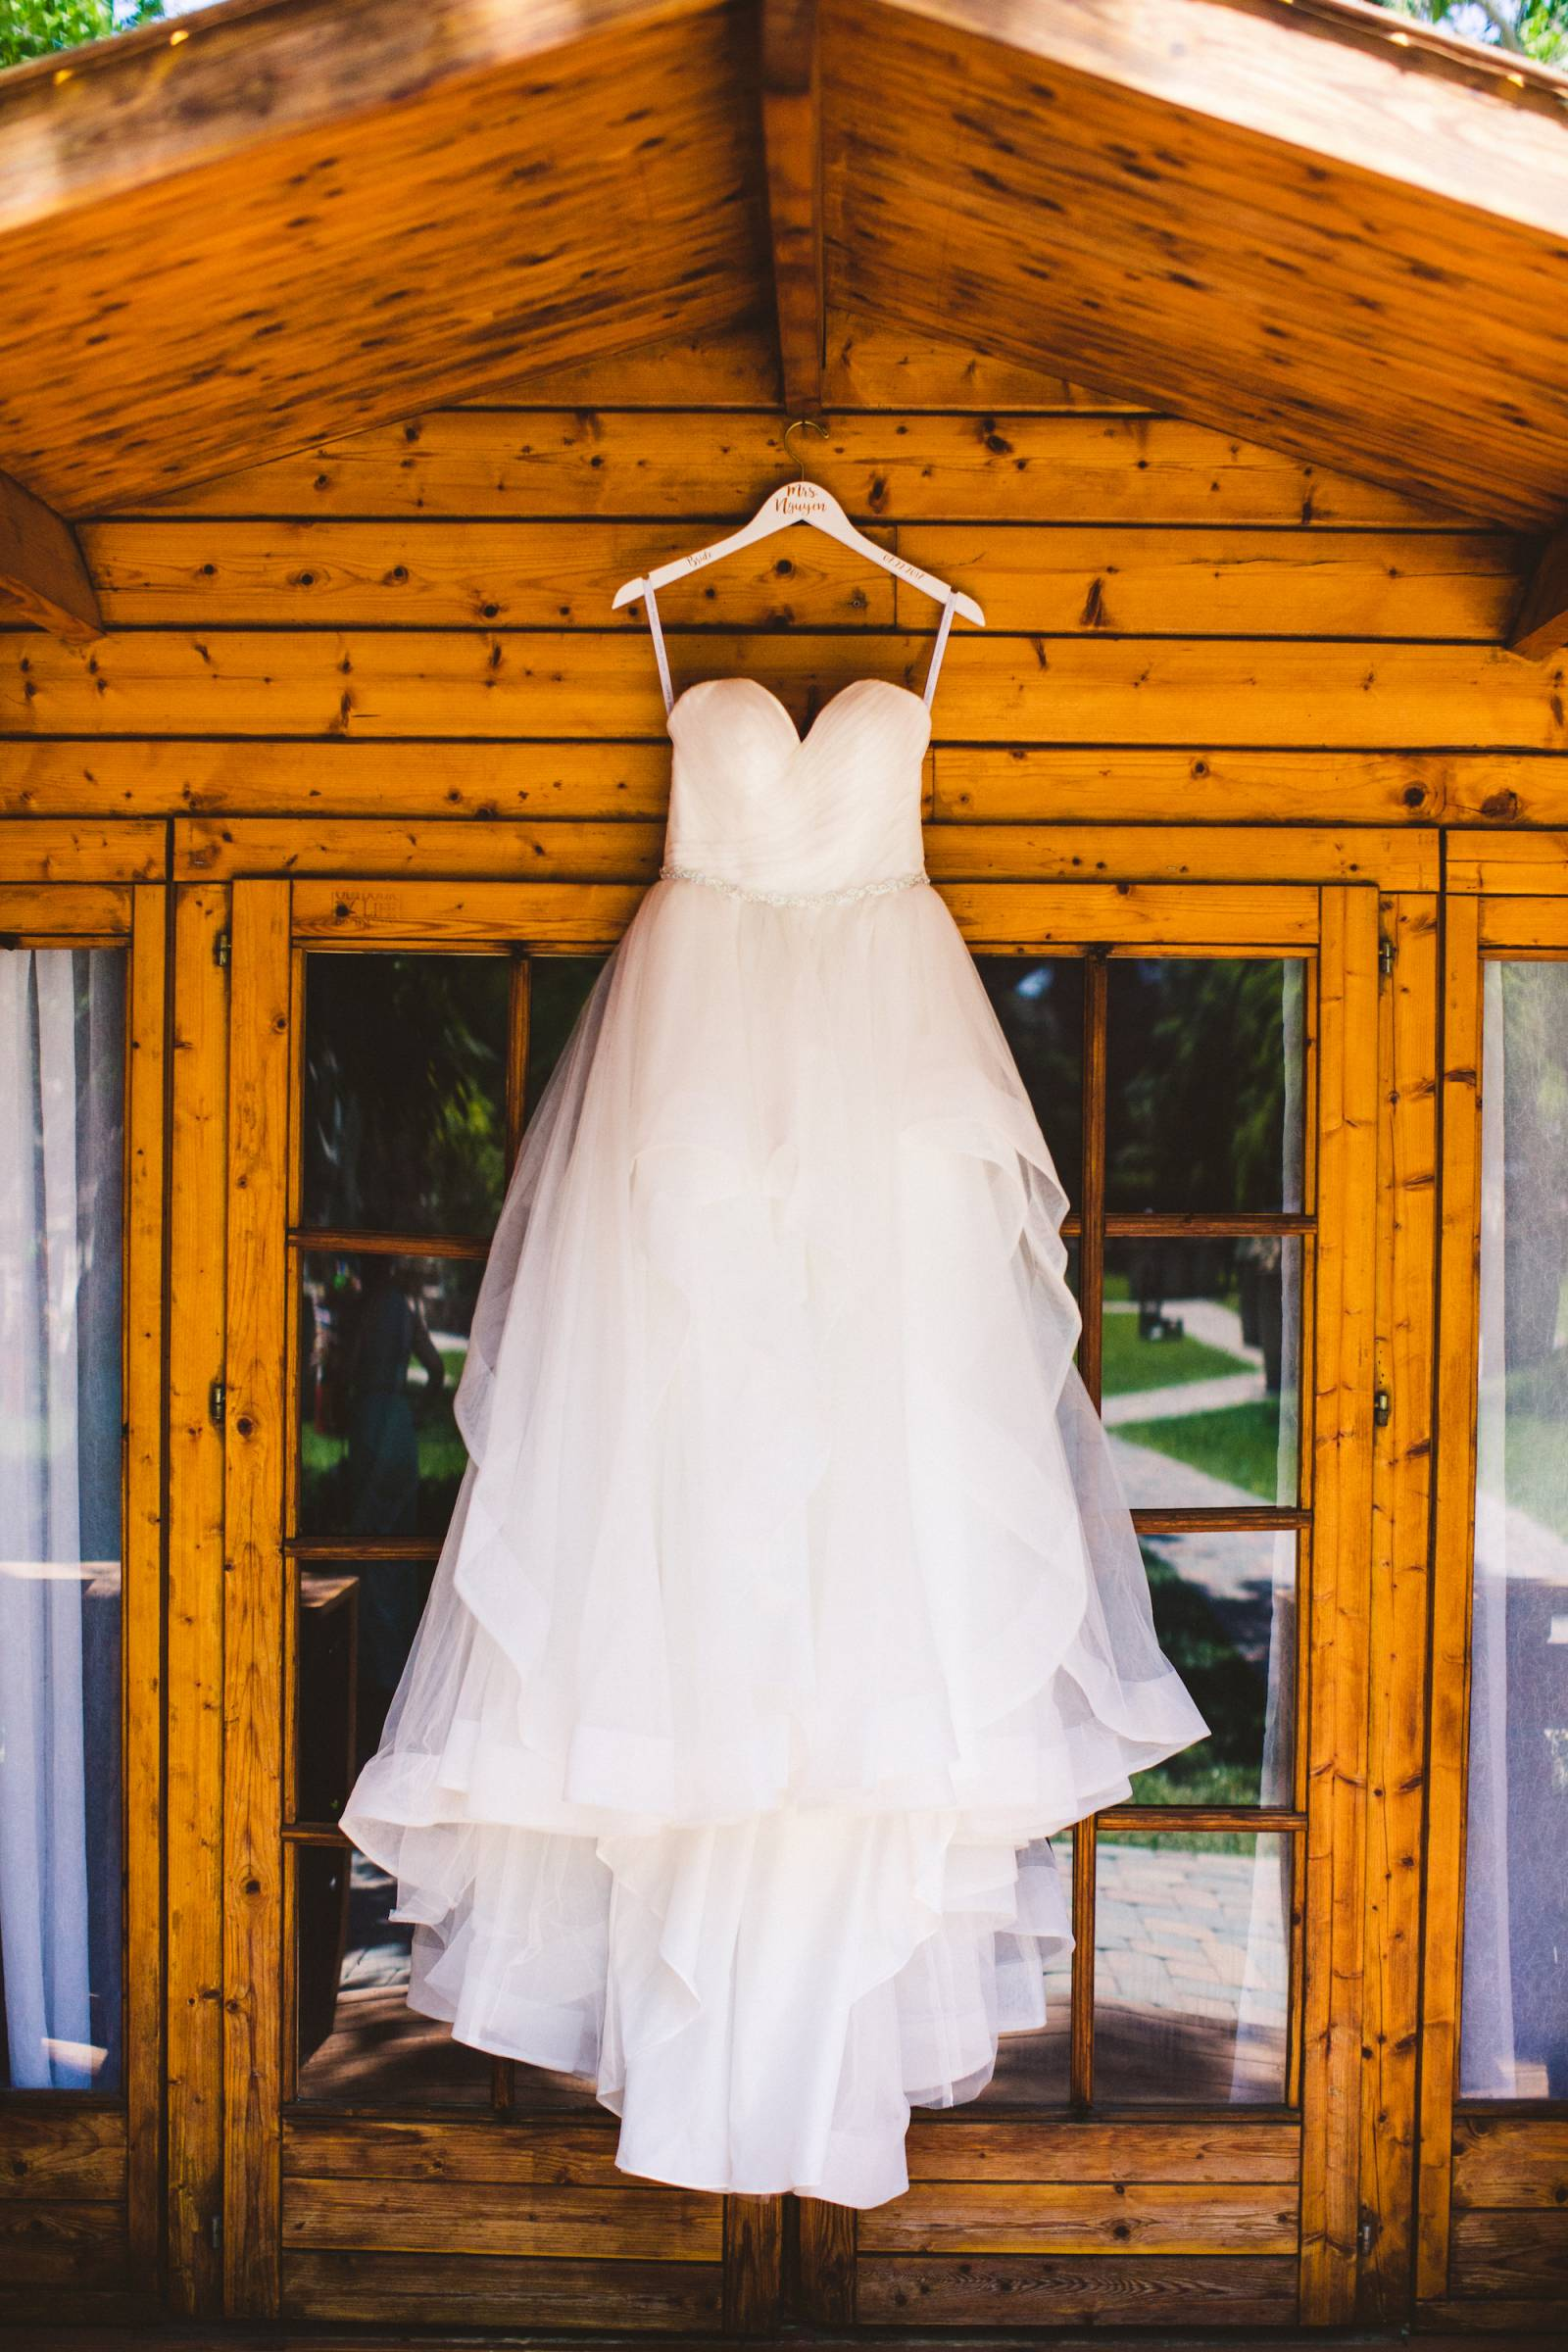 A Classic Bride's Dress - Adventure Inspired Weding | The Wedding Standard